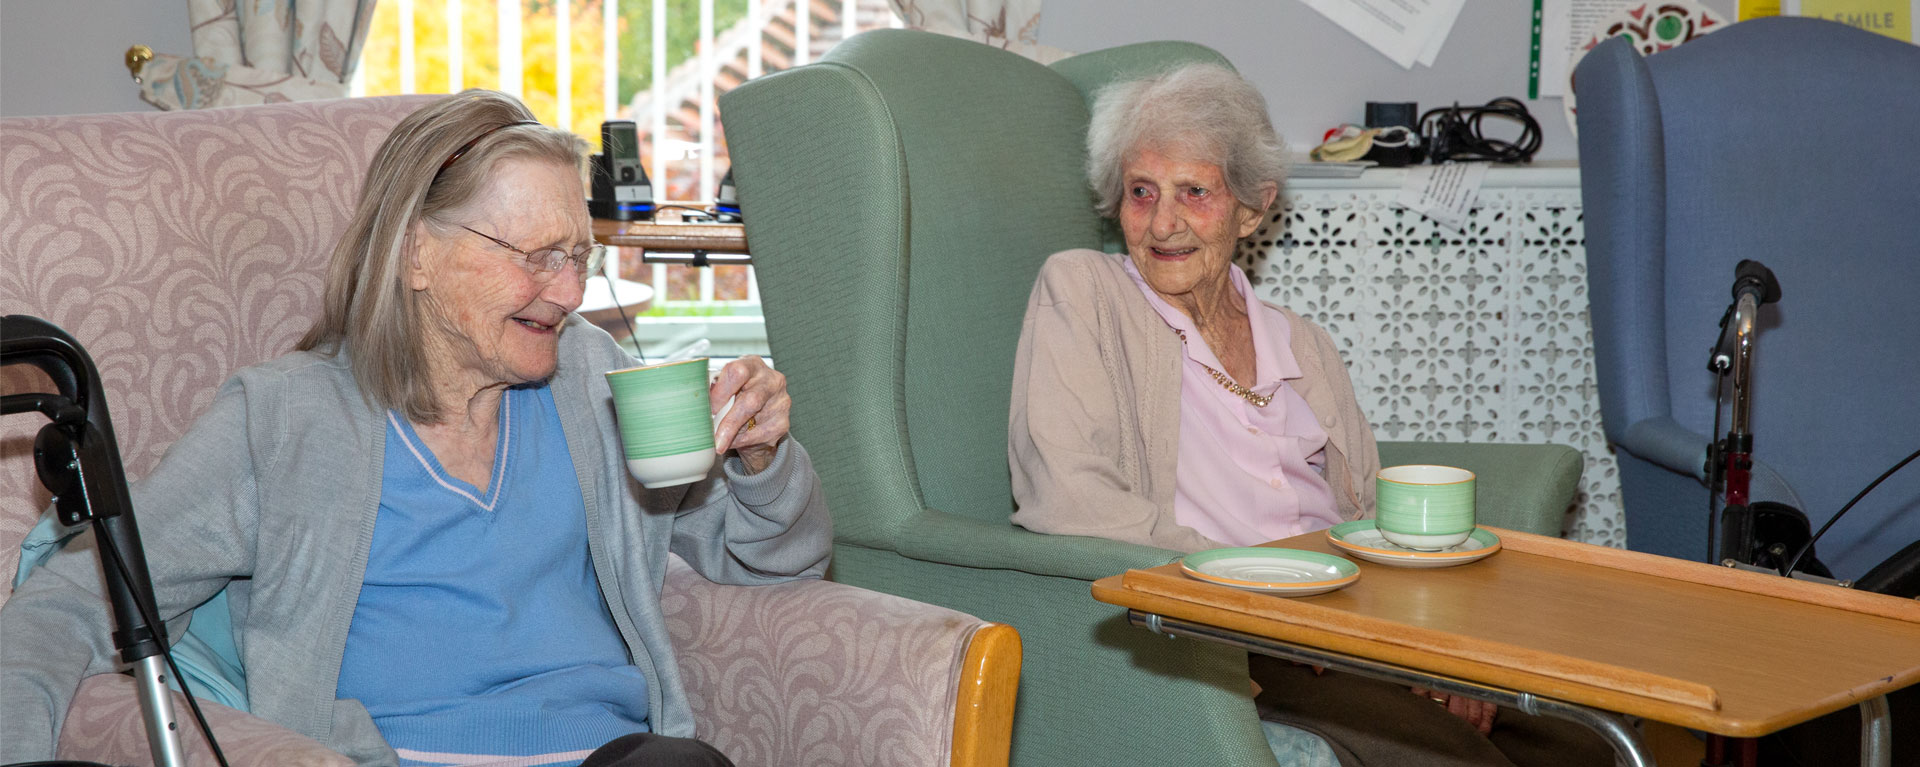 Two residents relaxing in the lounge having a cup of tea